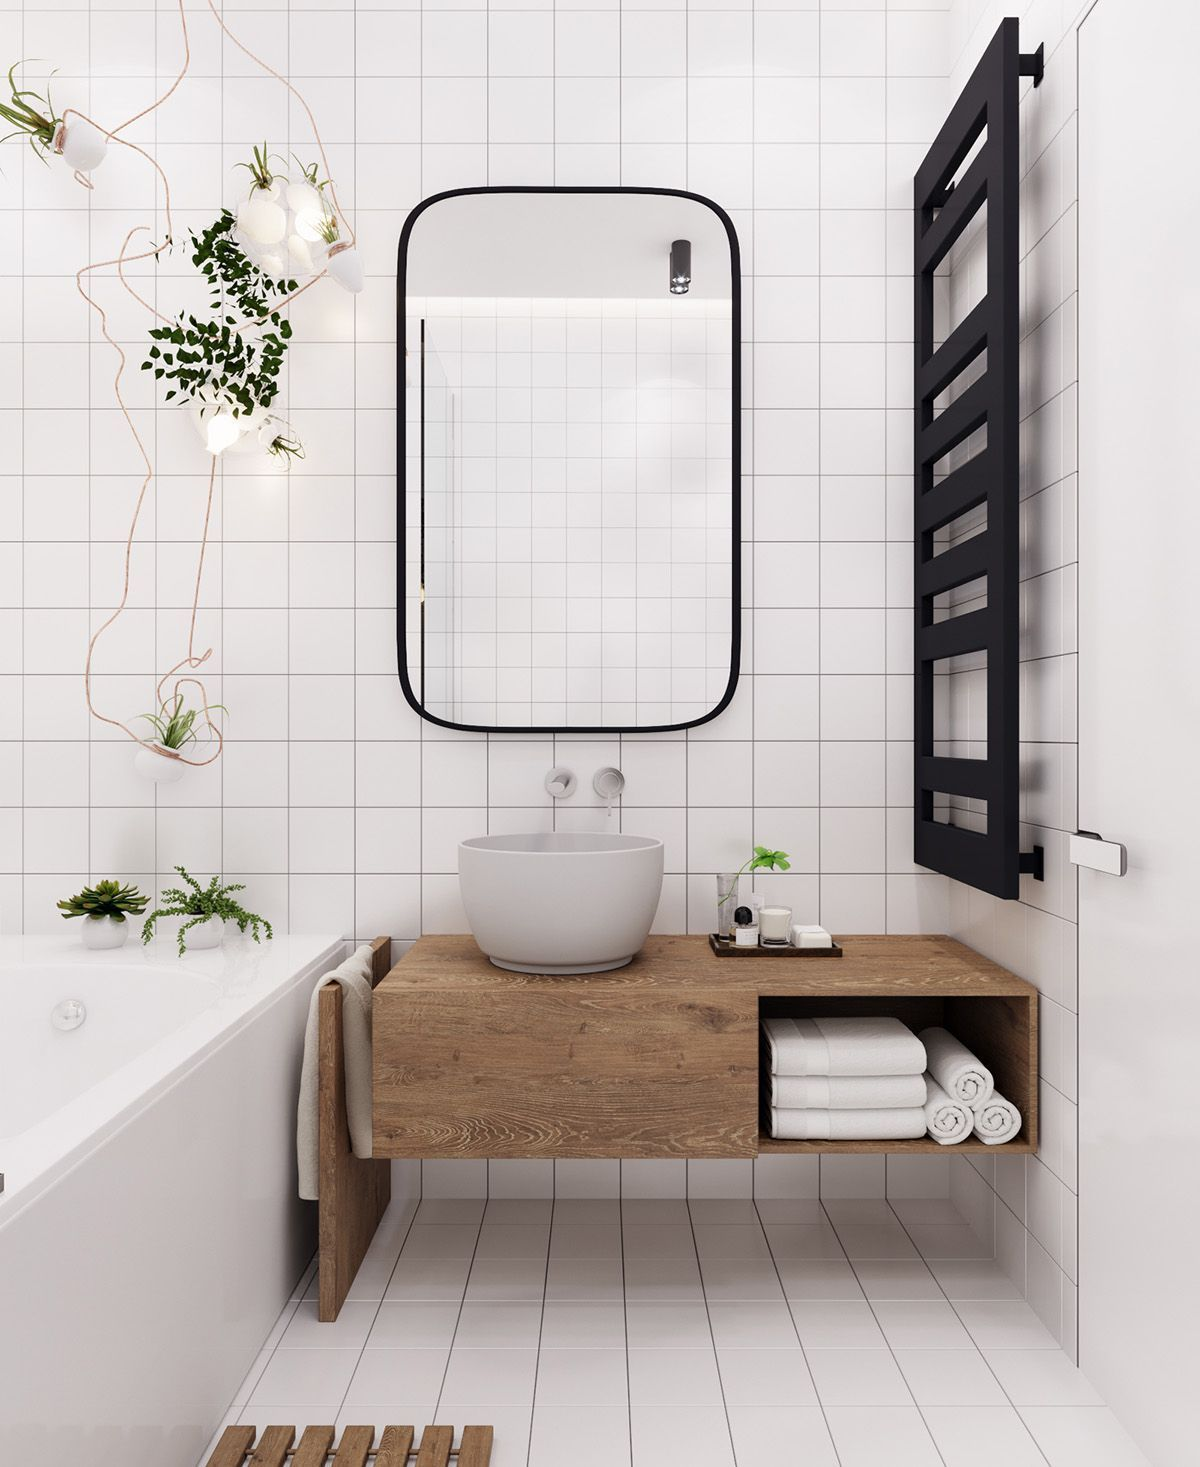 Are You Searching For Best Bathroom Mirror Ideas This Beautiful Bathroom Mirror Ideas Are Fun Rustic Modern Bathroom Modern Bathroom Mirrors Bathroom Interior